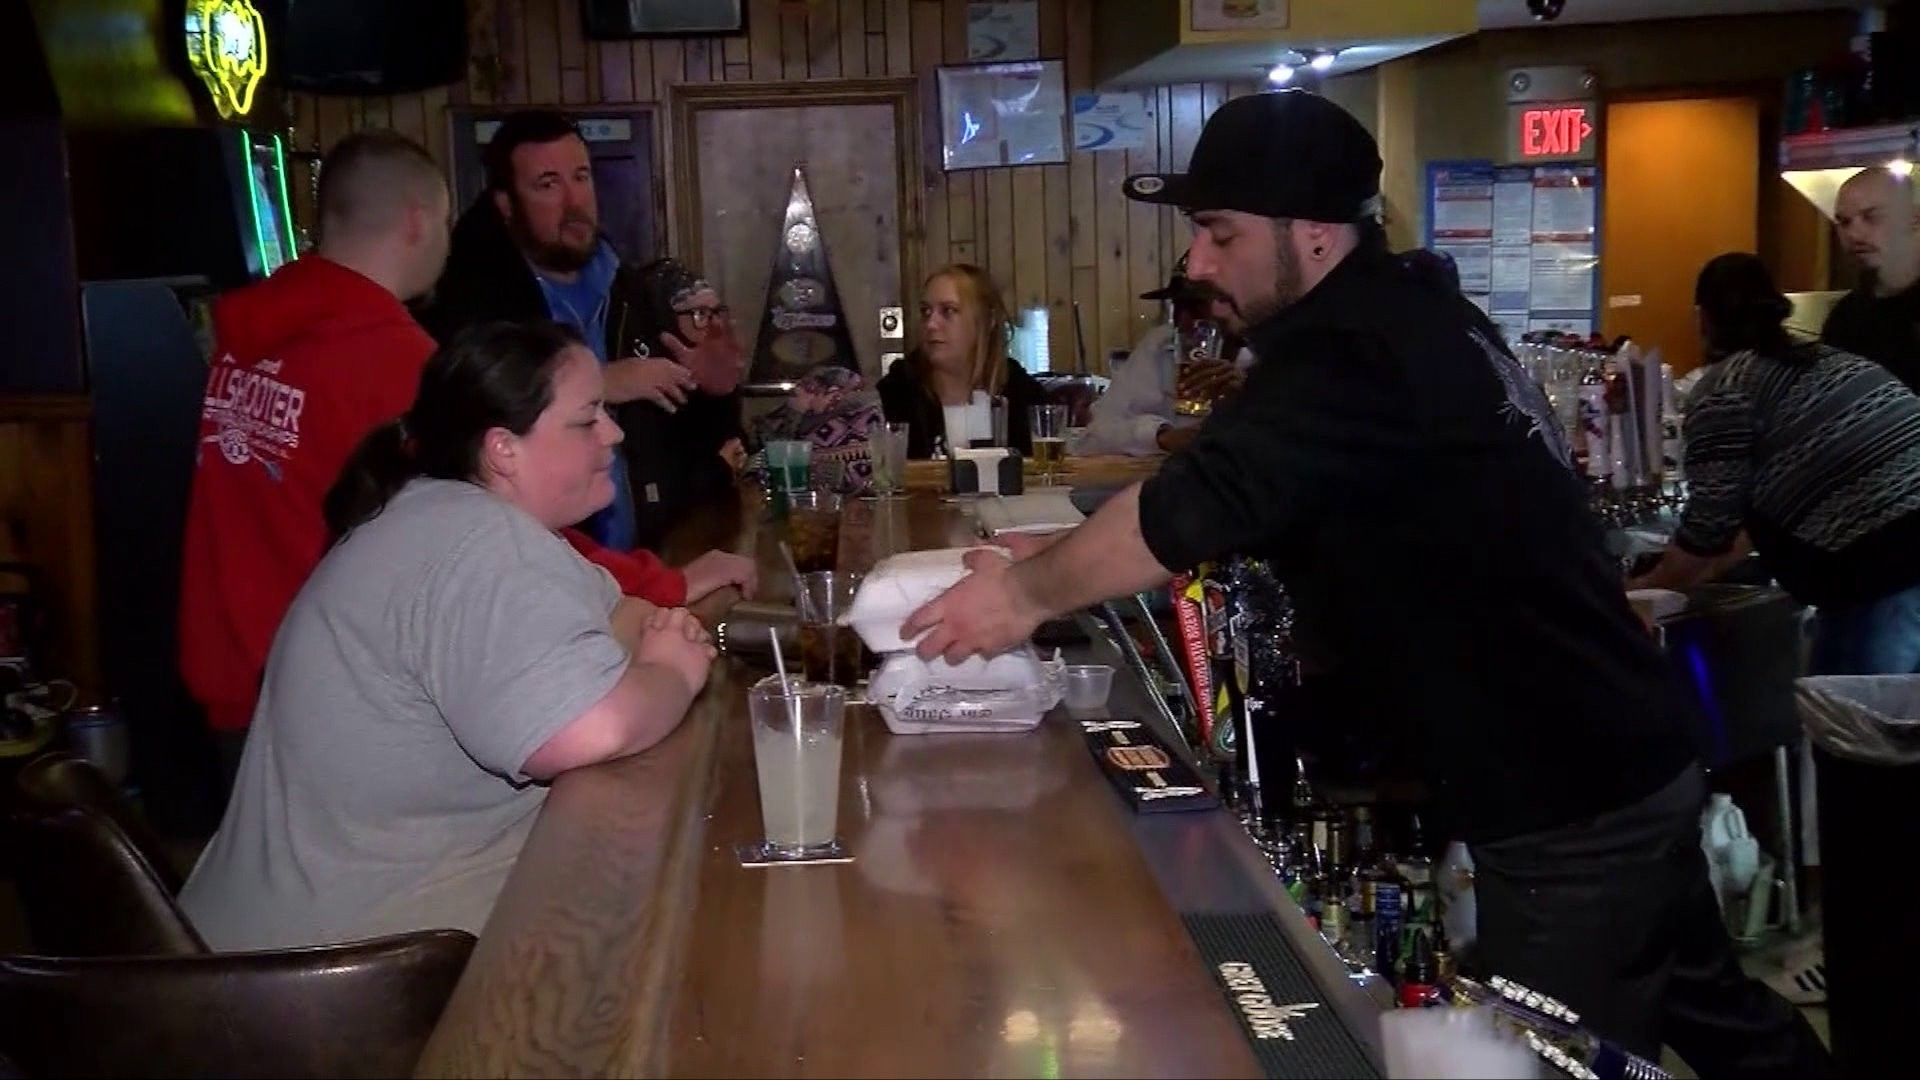 A bar in Wisconsin opened on May 13, 2020. (WITI)